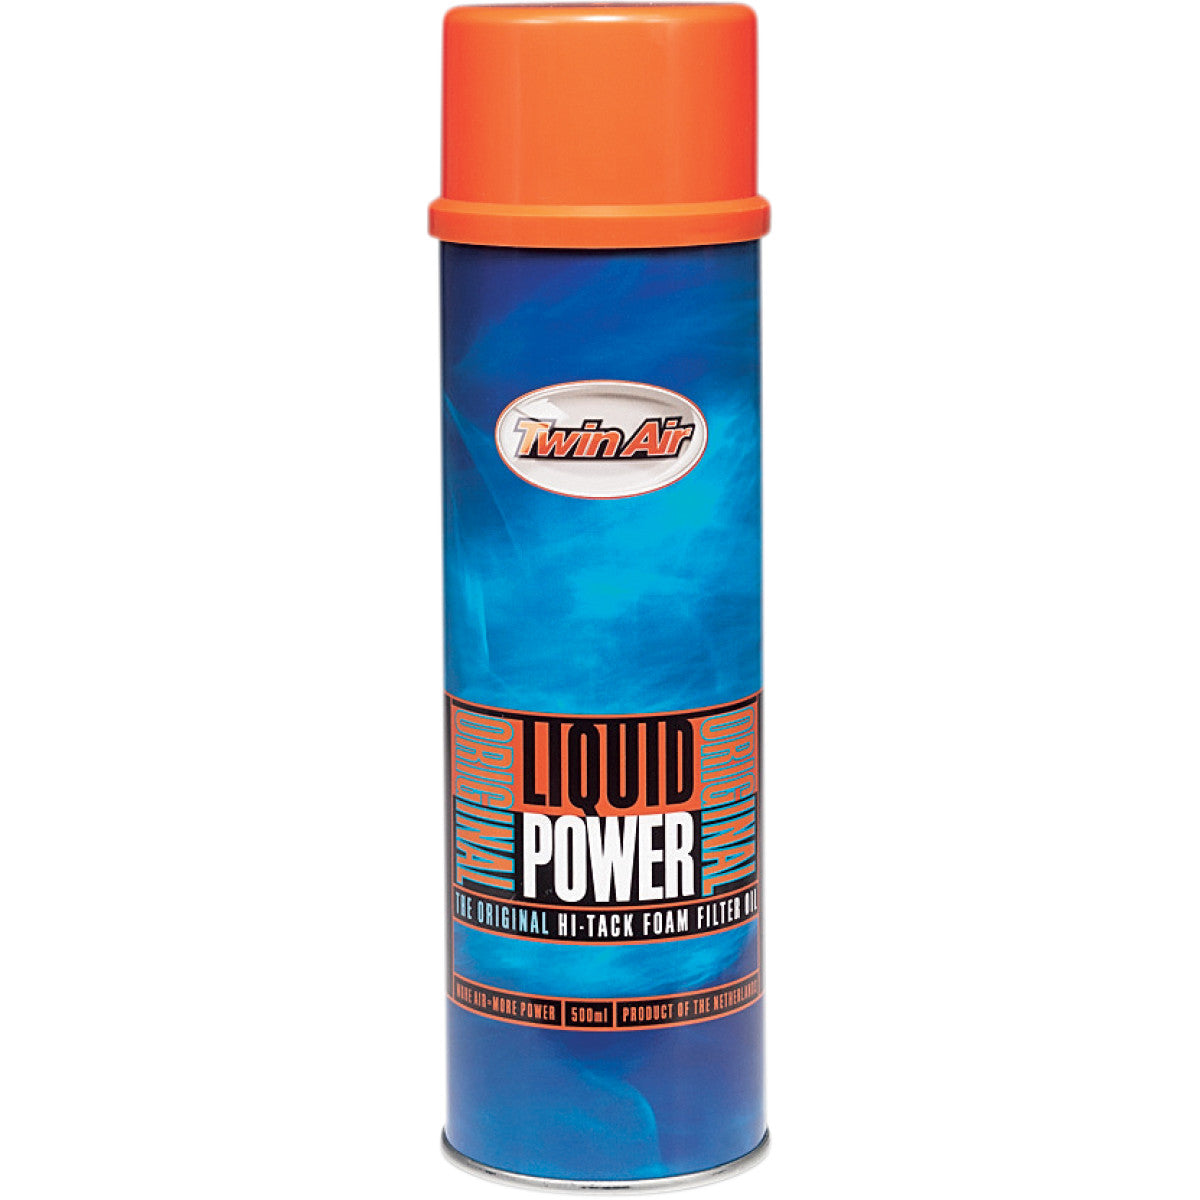 TWIN AIR LIQUID POWER AIR FILTER OIL SPRAY 500 ML